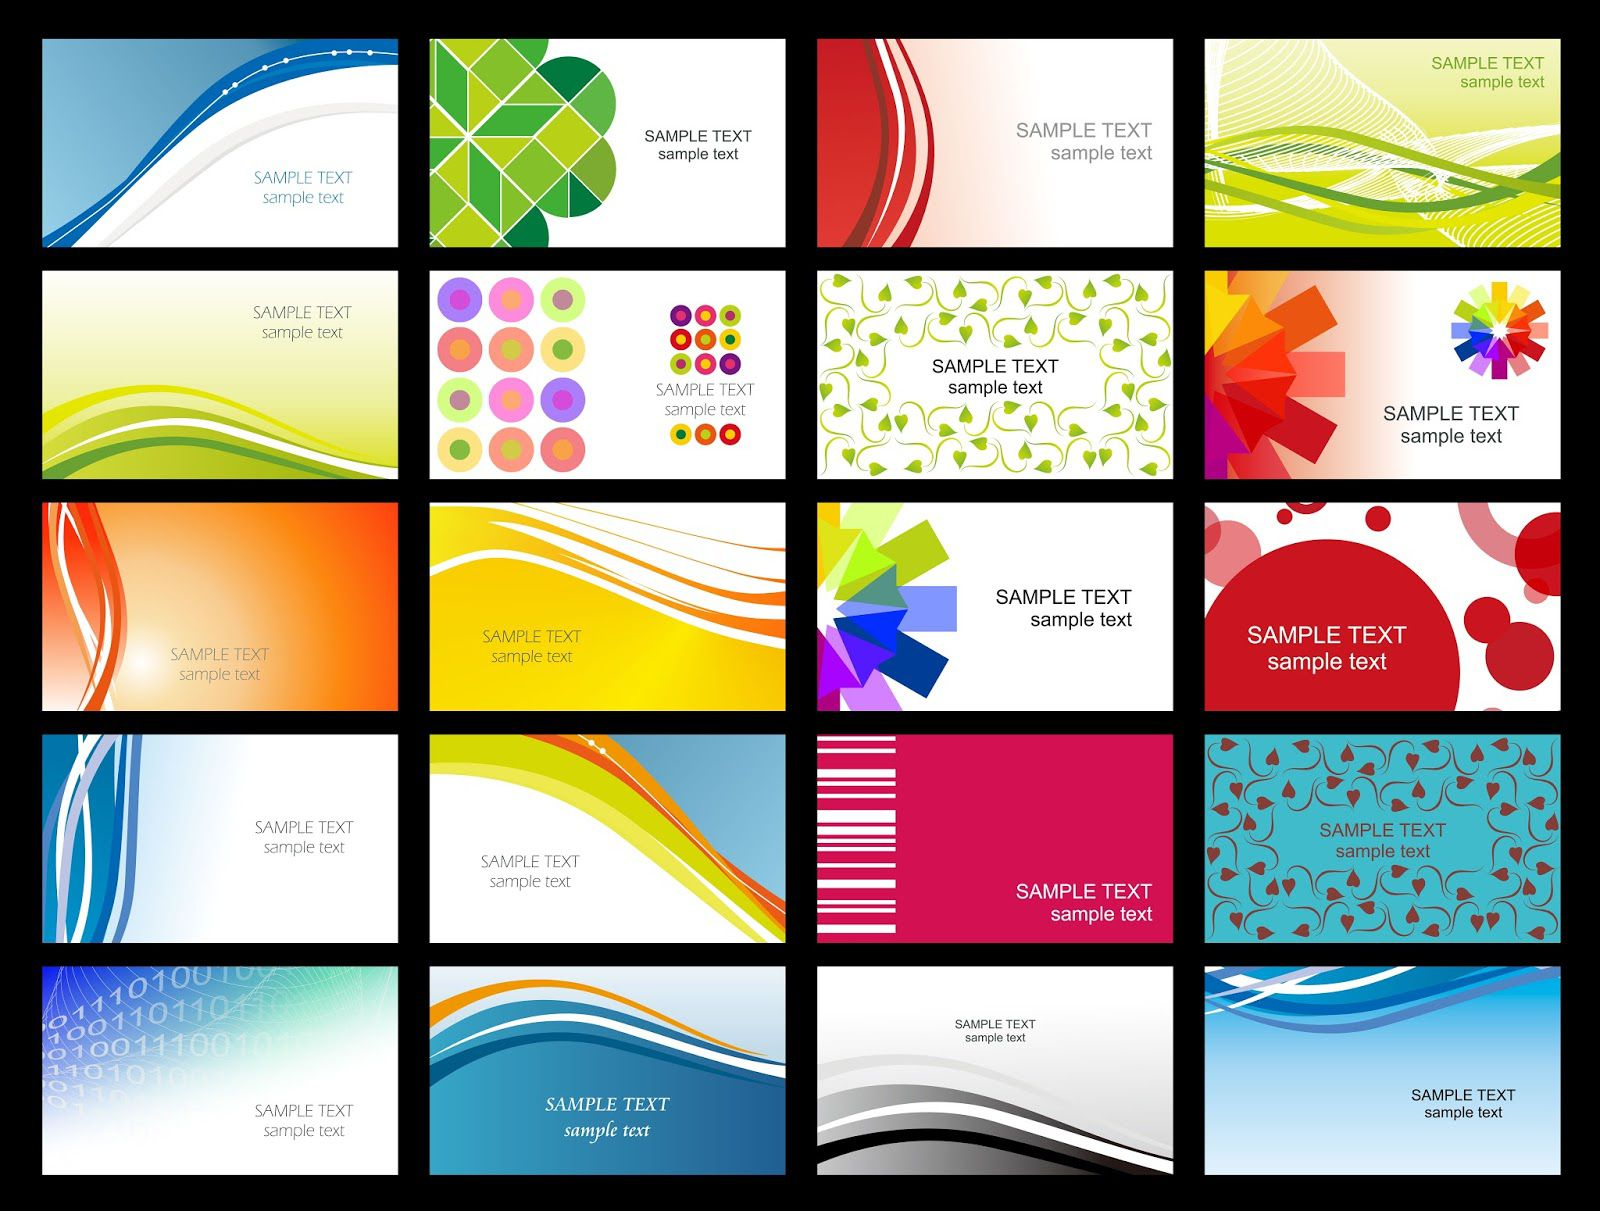 008 Impressive Free Blank Busines Card Template Idea  Templates Online Printable For Word DownloadFull